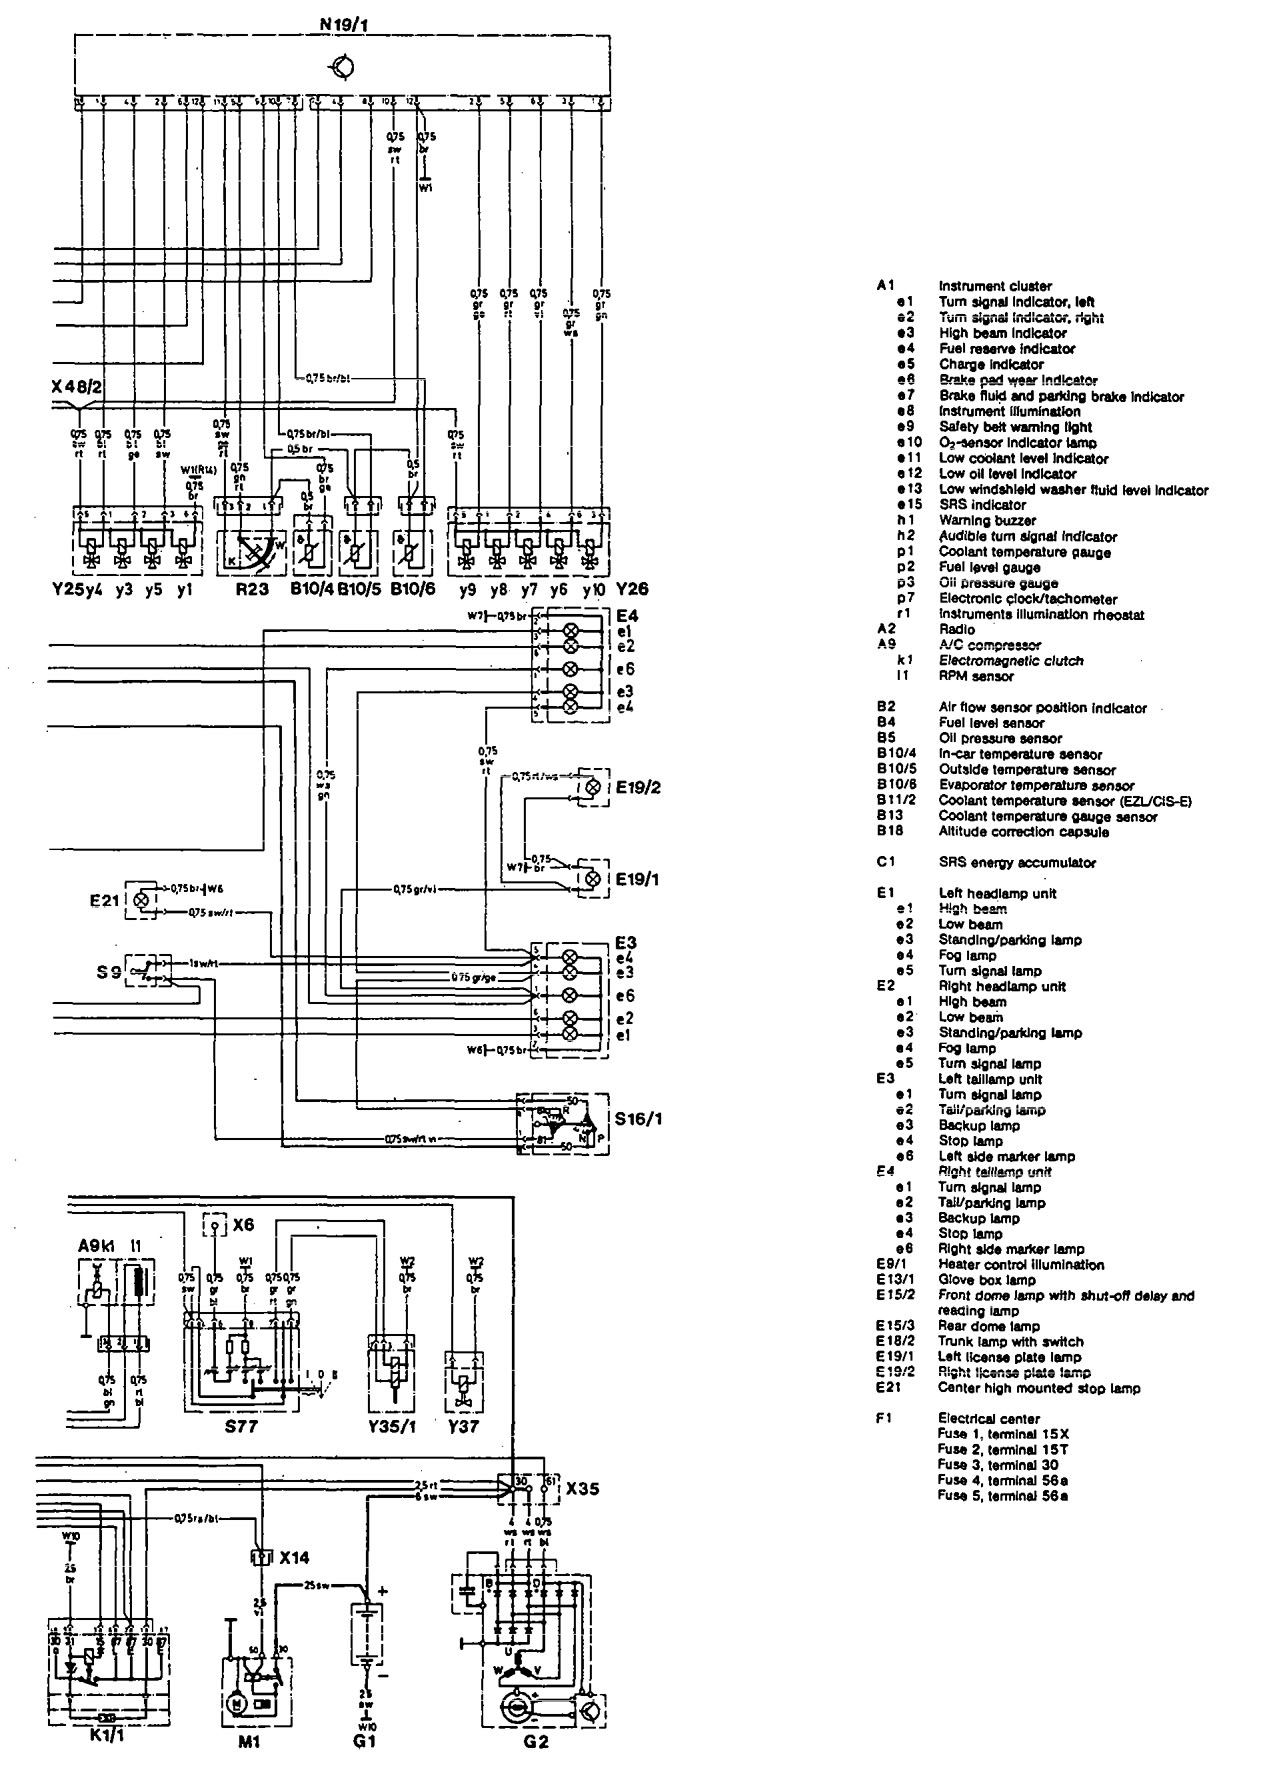 Mercede S430 Fuse Box Diagram